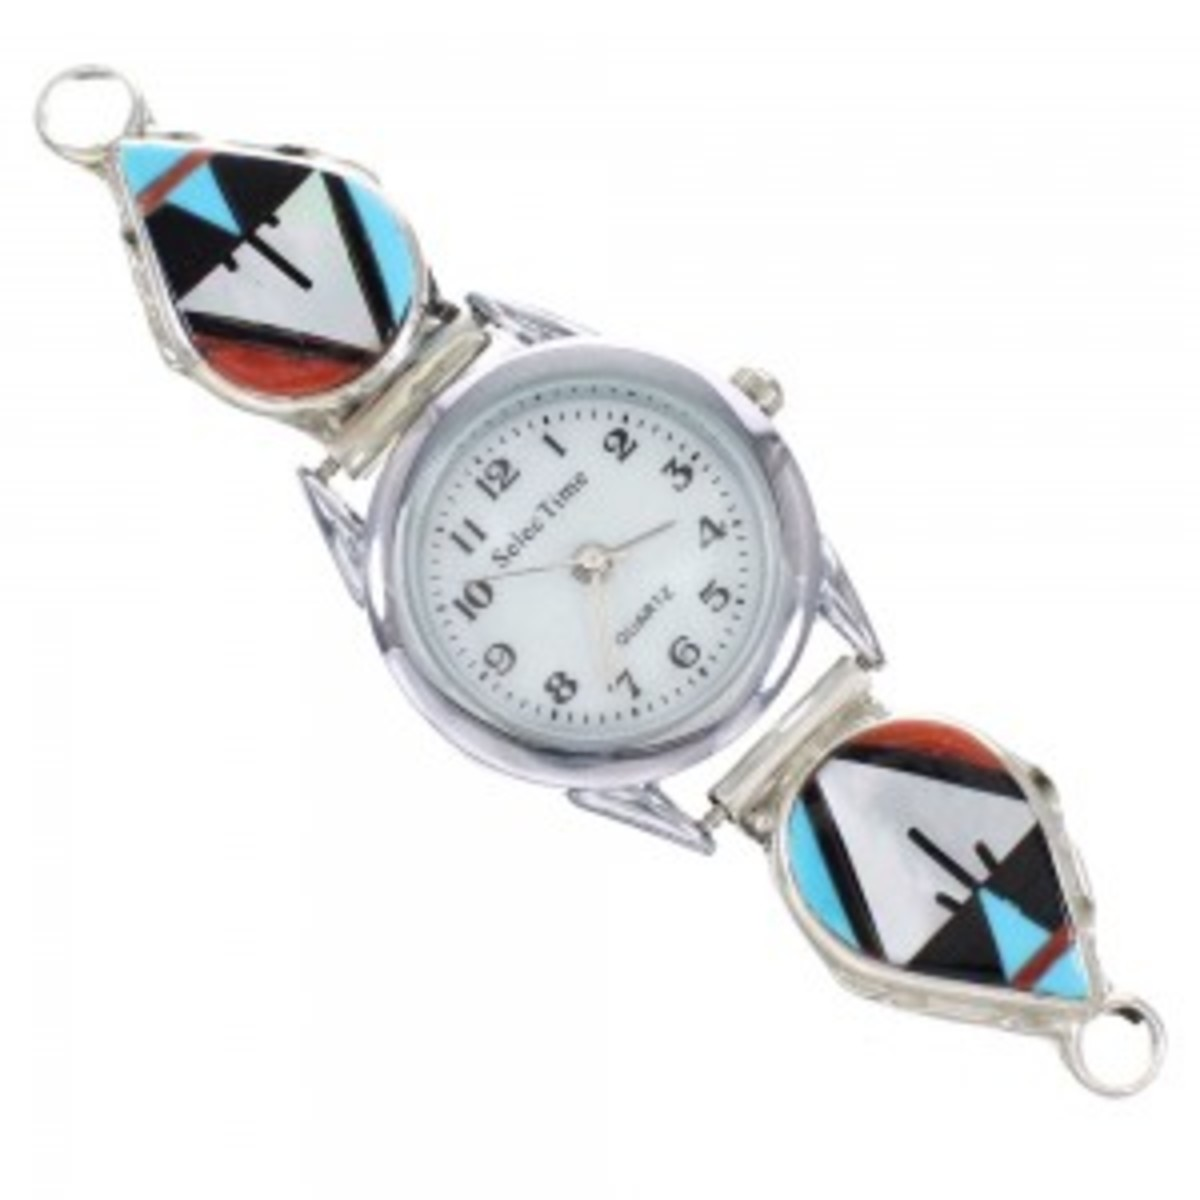 Zuni inlay watchband.  Turquoise, coral, jet and mother of pearl stones.